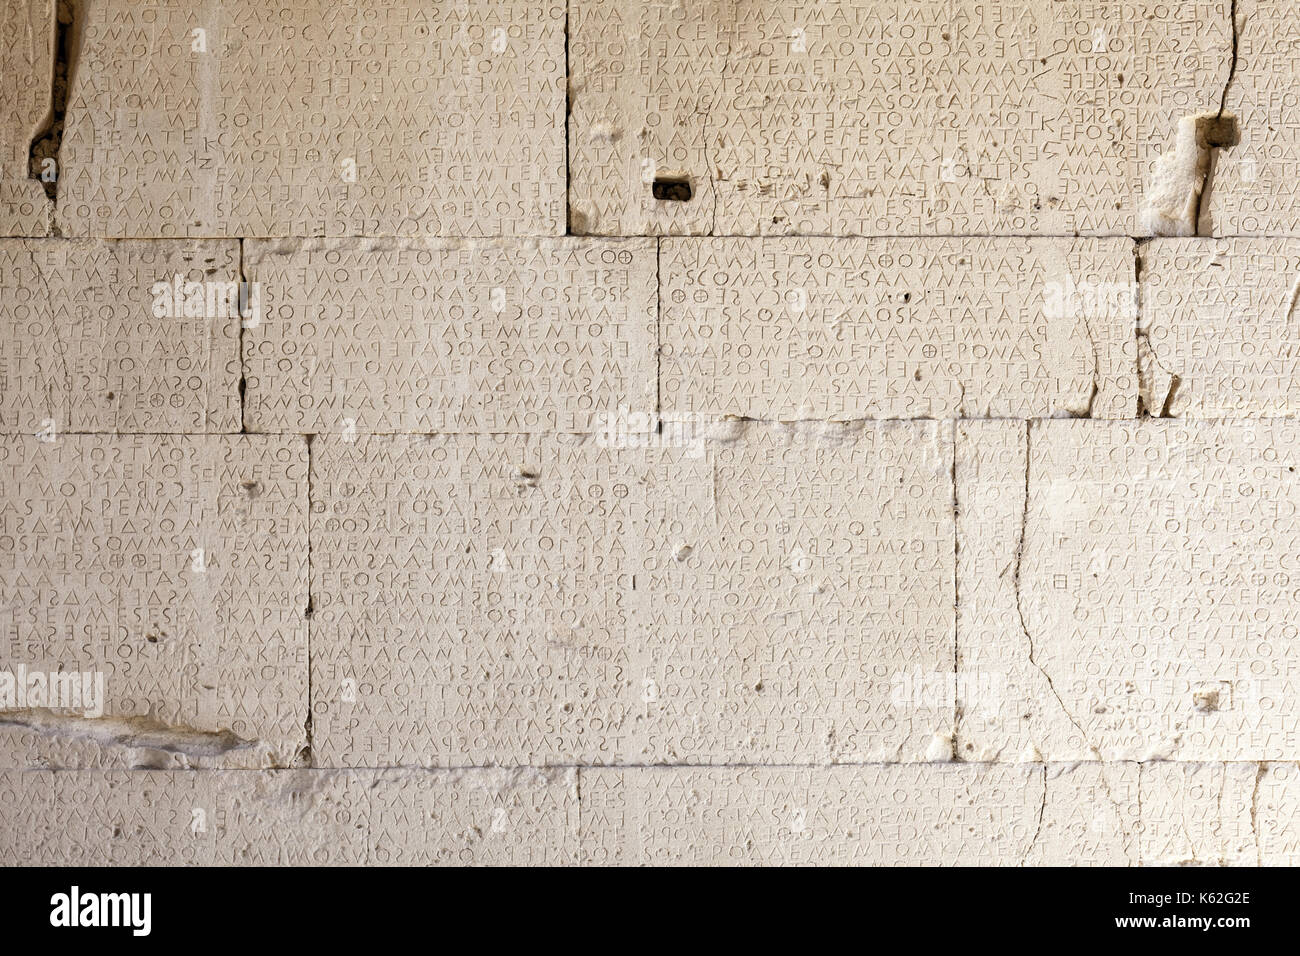 Ancient Greek inscription on stone slabs found in Gortyn (Gortys,  Gortyna), Crete, Greece - Stock Image